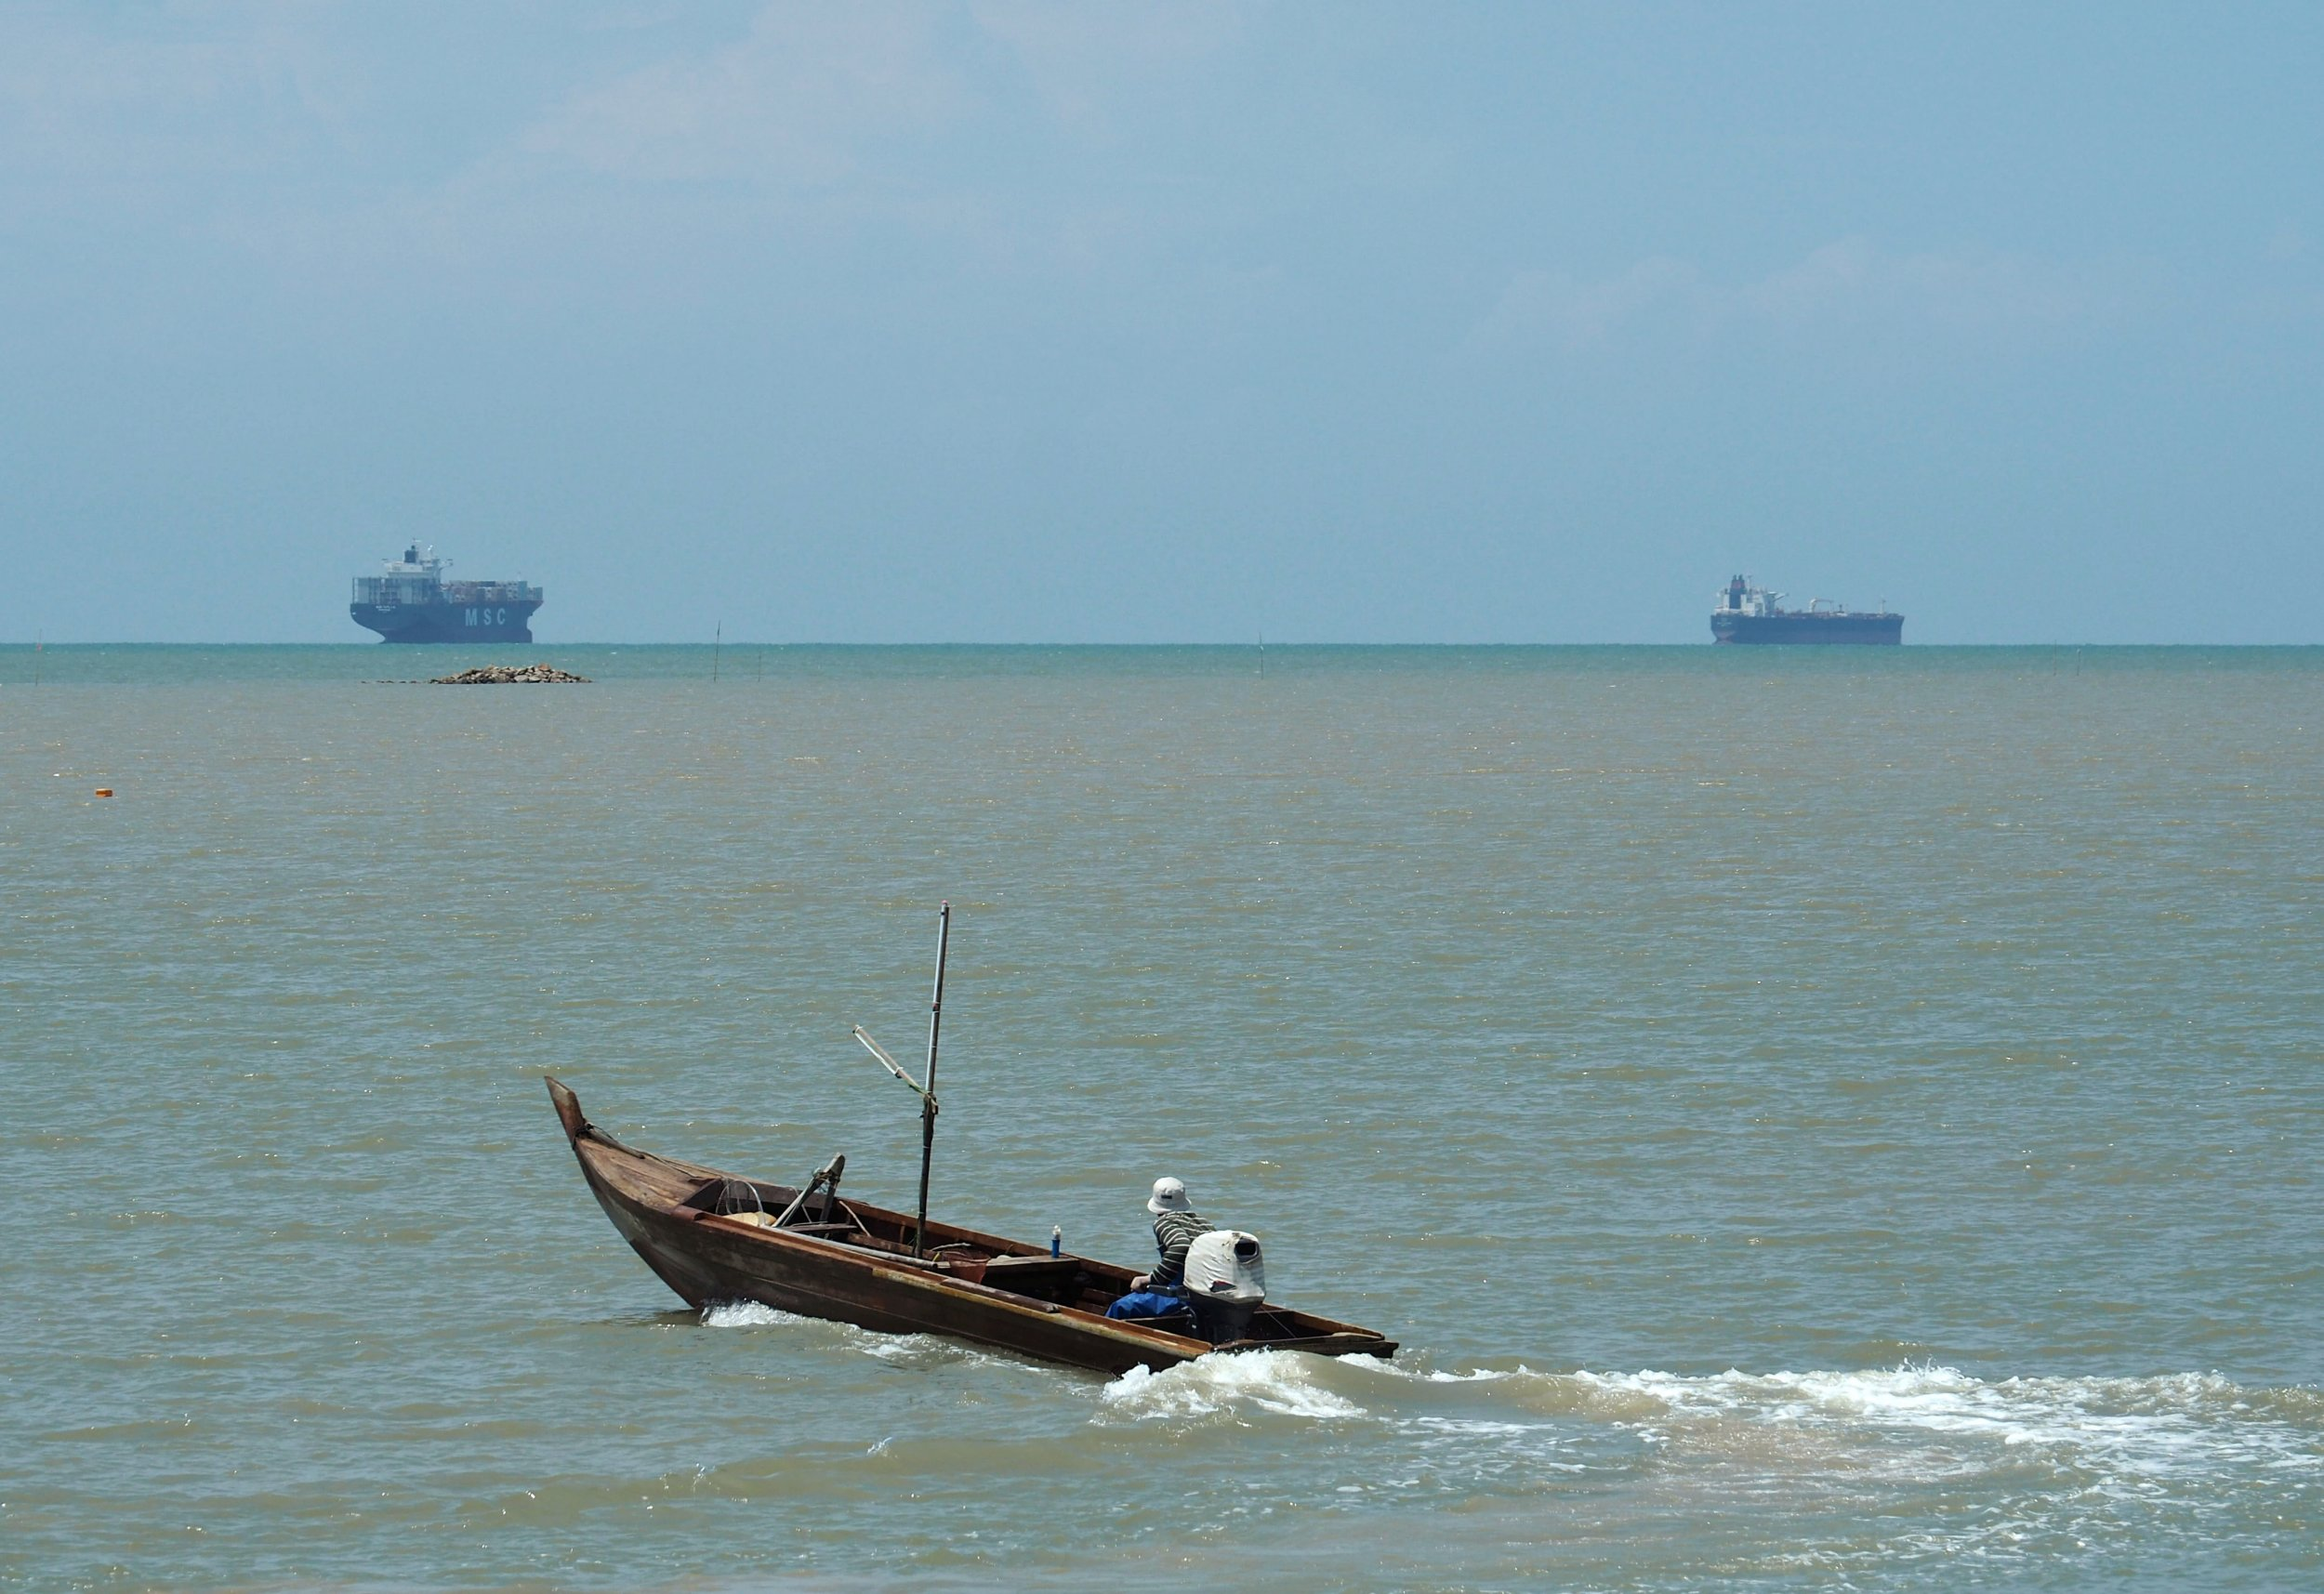 Boat in Malaysian waters